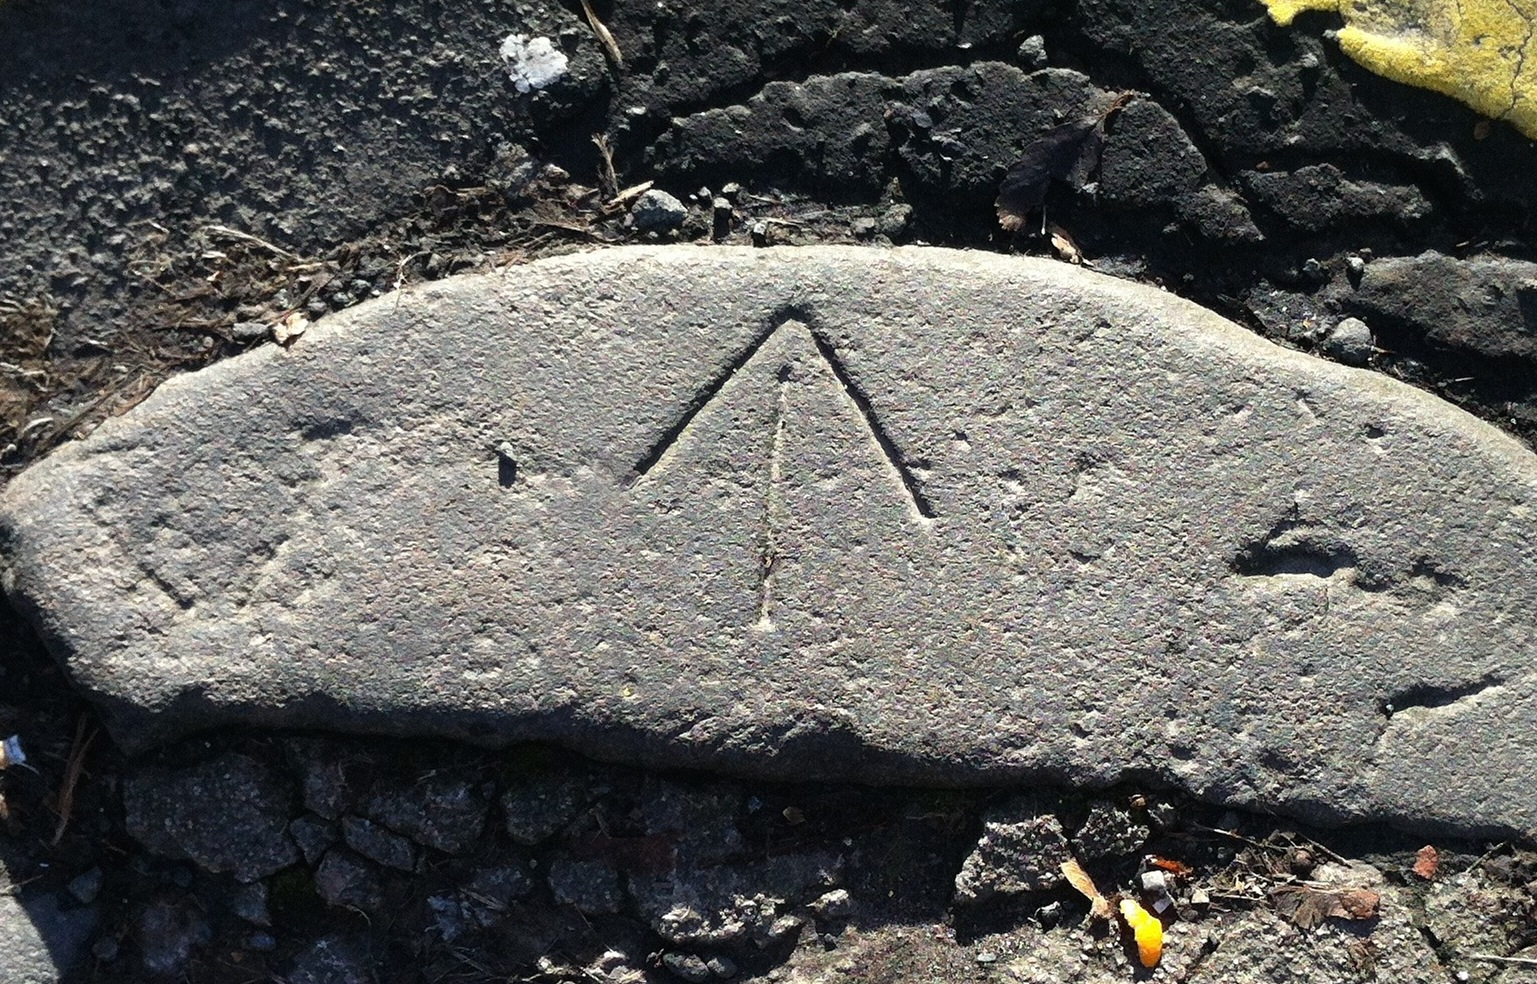 Located on University Avenue in Glasgow, Scotland this stone is on the tip of a right angle turn and points precisely to 45%. Essentially from this arrow the masons could sting a perfect right angle on the street corner.